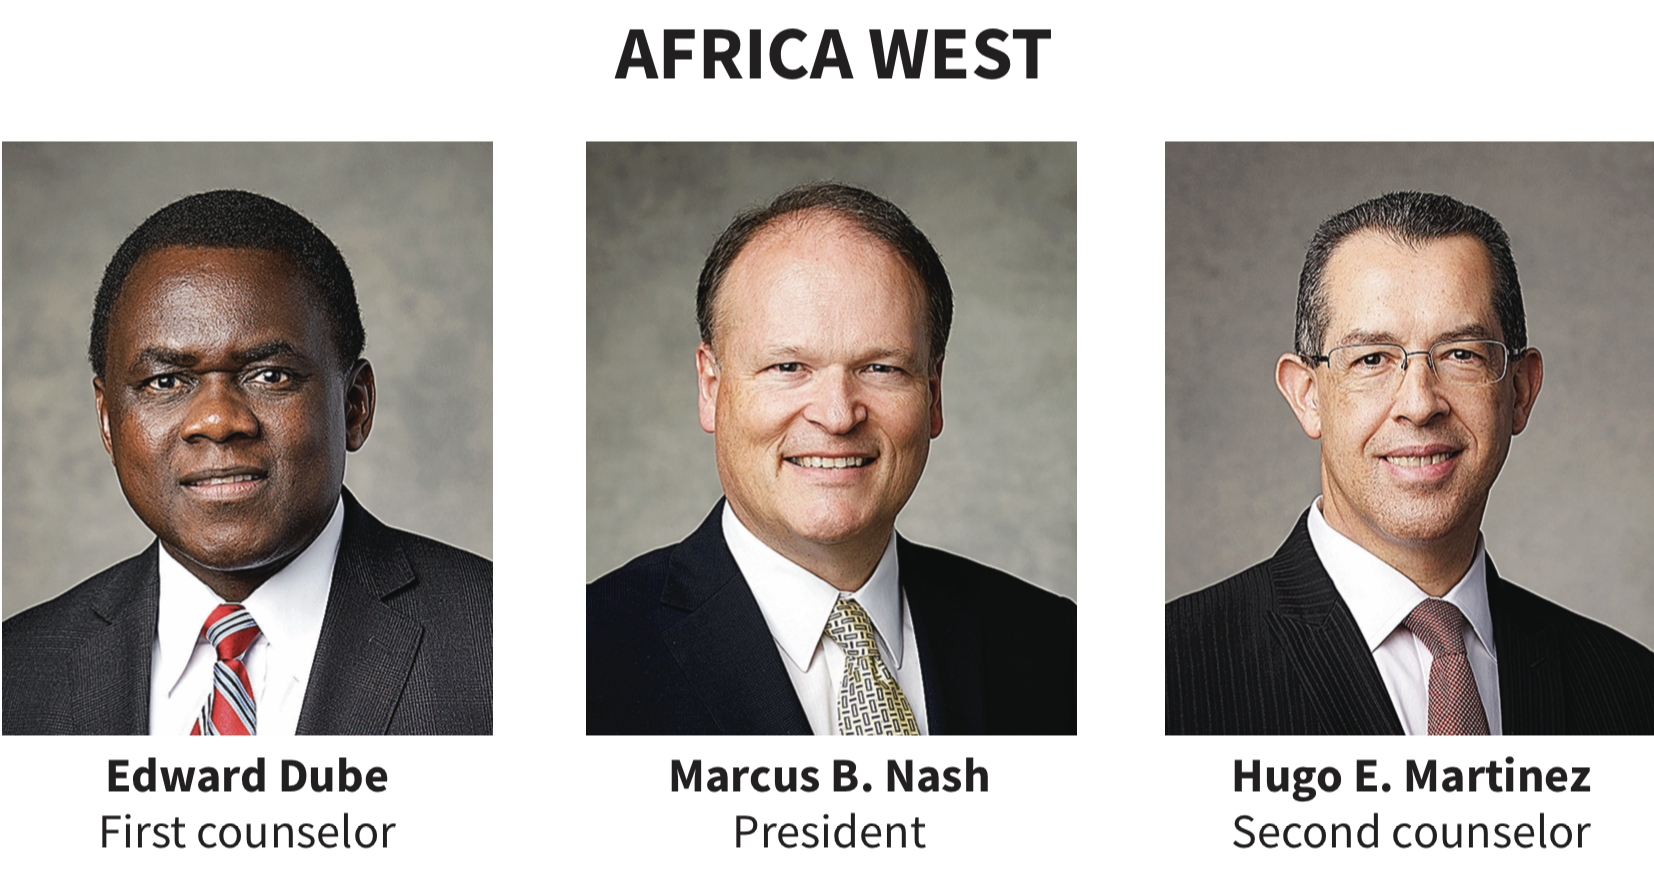 Africa West area presidency